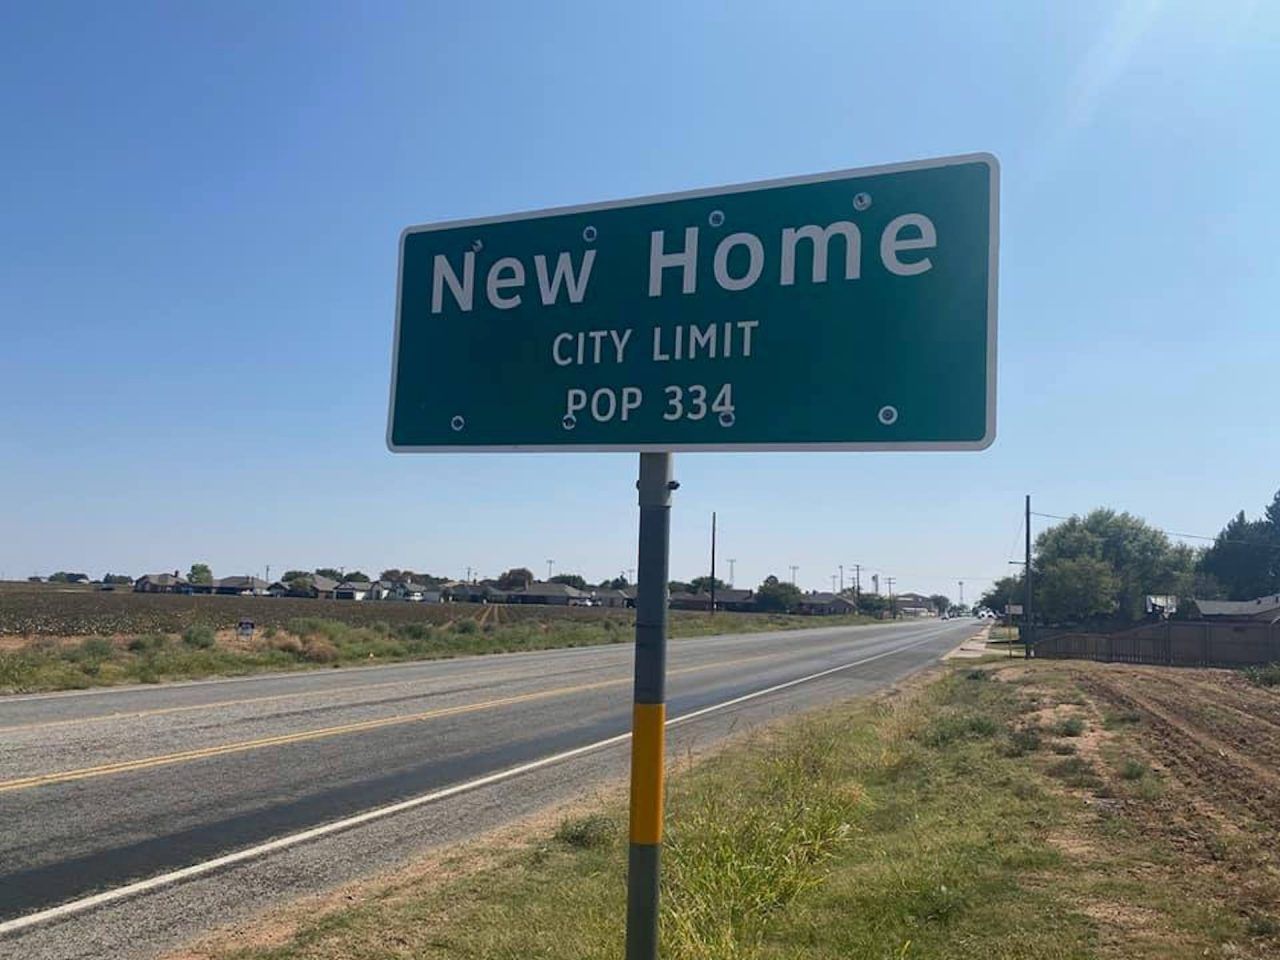 https://thetexan.news/wp-content/uploads/2020/09/city-of-new-home-1280x960.jpg